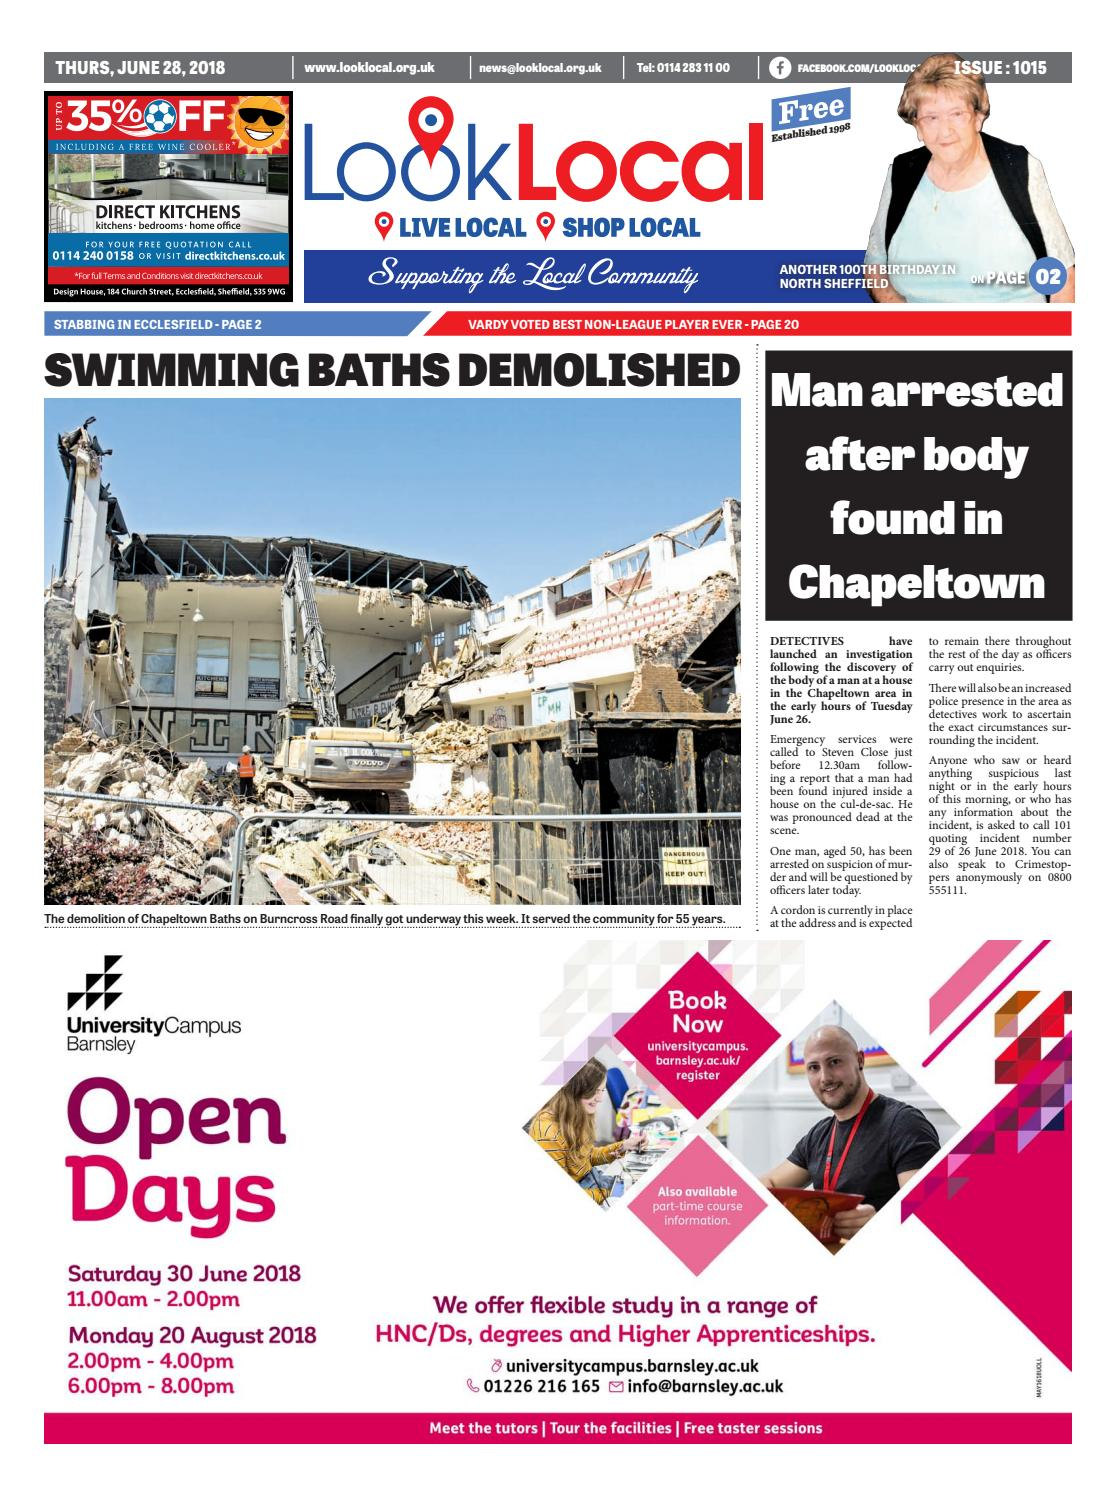 Issue 1015 Thursday 28 June 2018 By Look Local Newspaper Issuu Howreplaceblownfuse6427